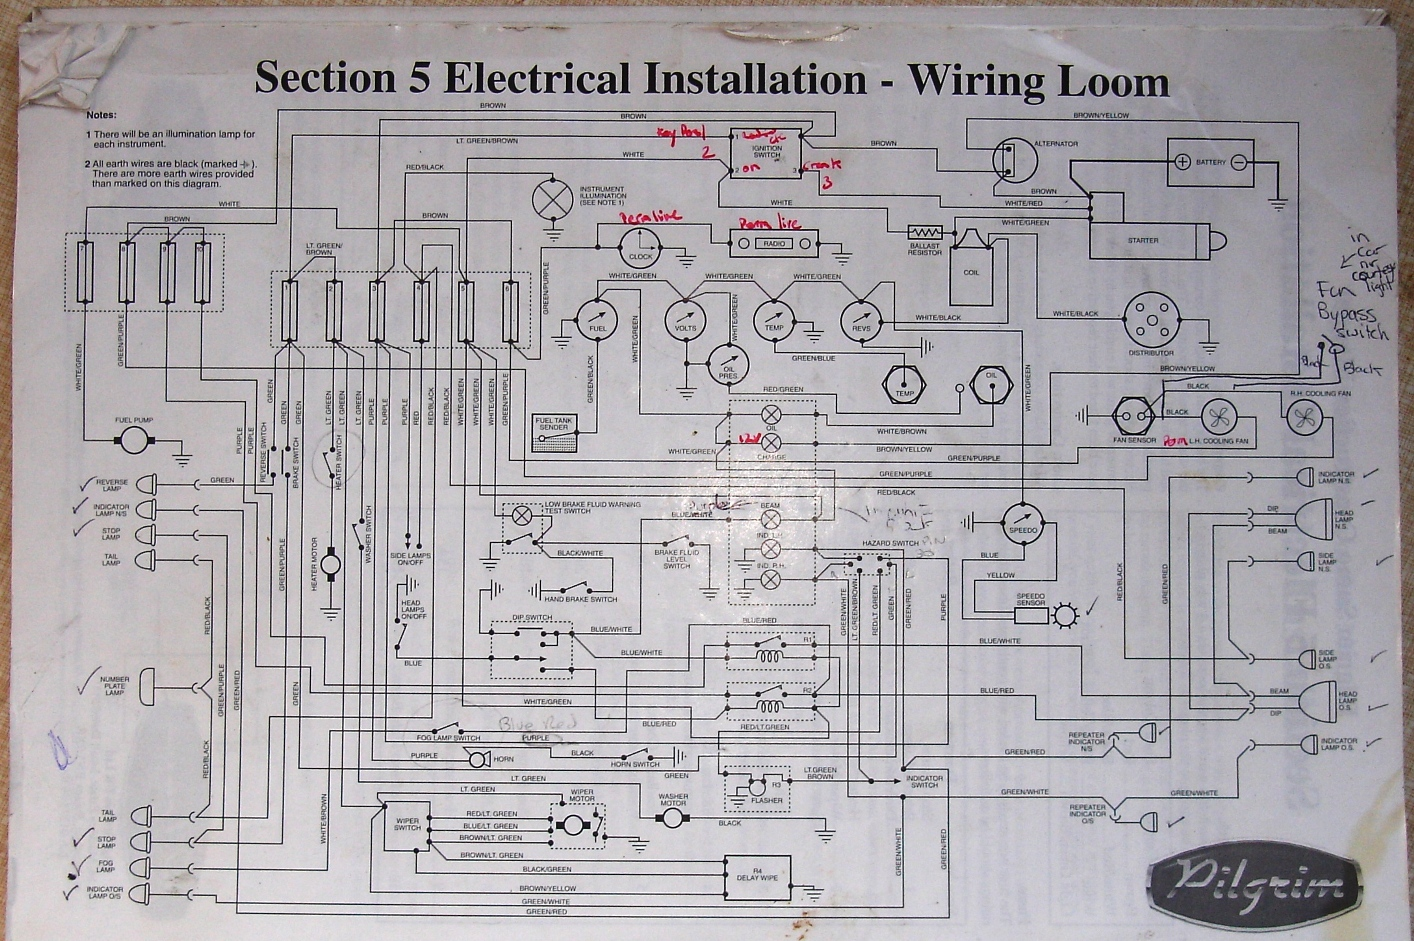 Free Image About Wiring Diagram Can Furthermore Can Bus Wiring Diagram